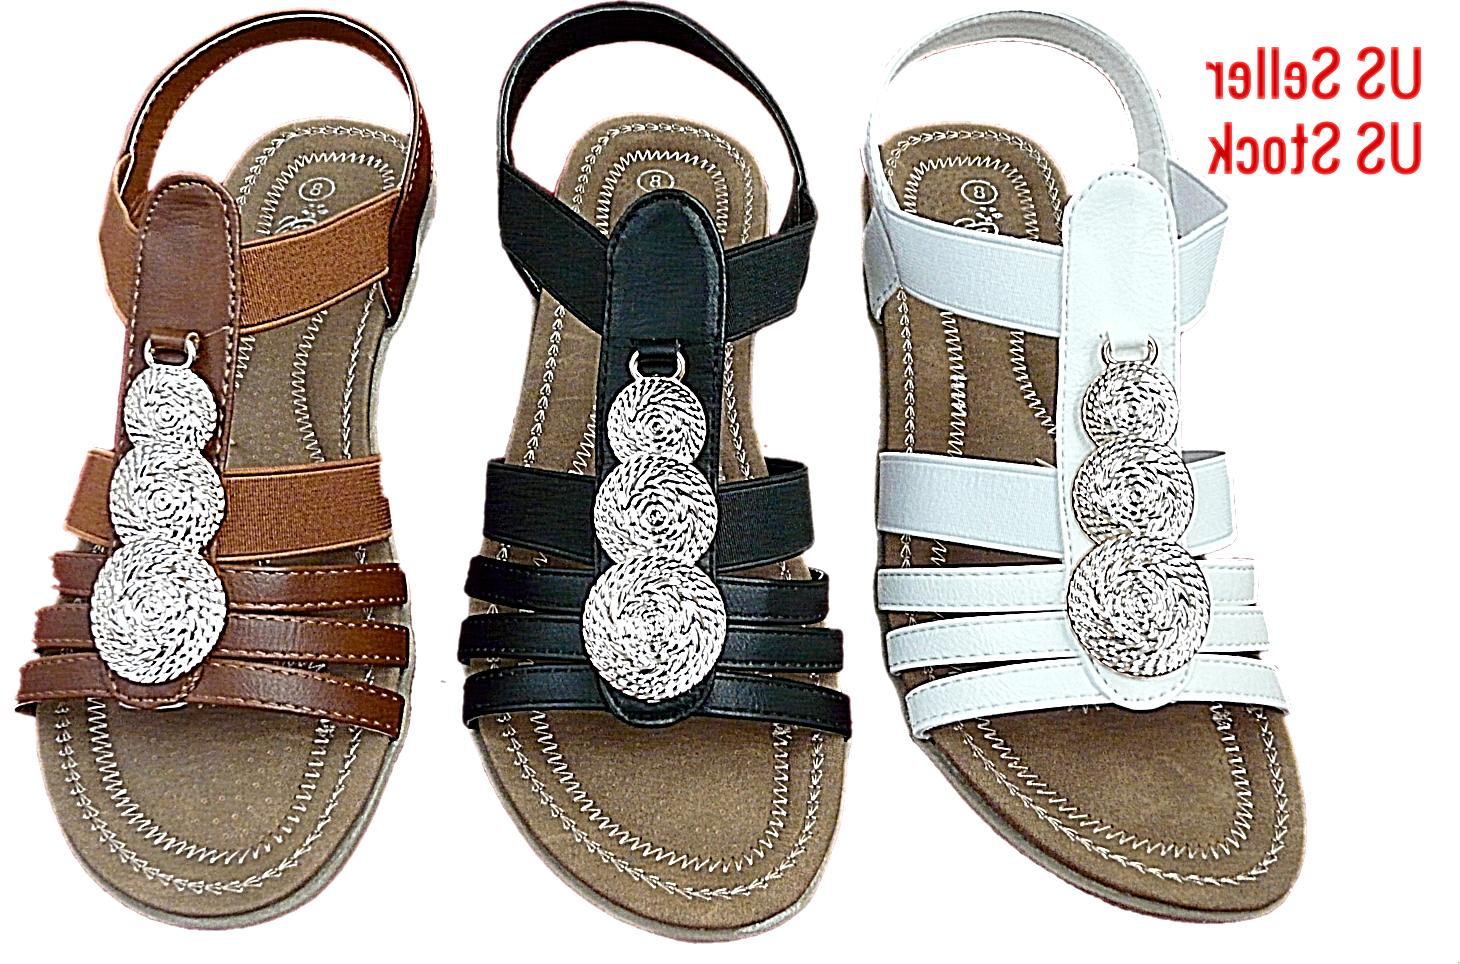 new women comfort wedge sandals back strap